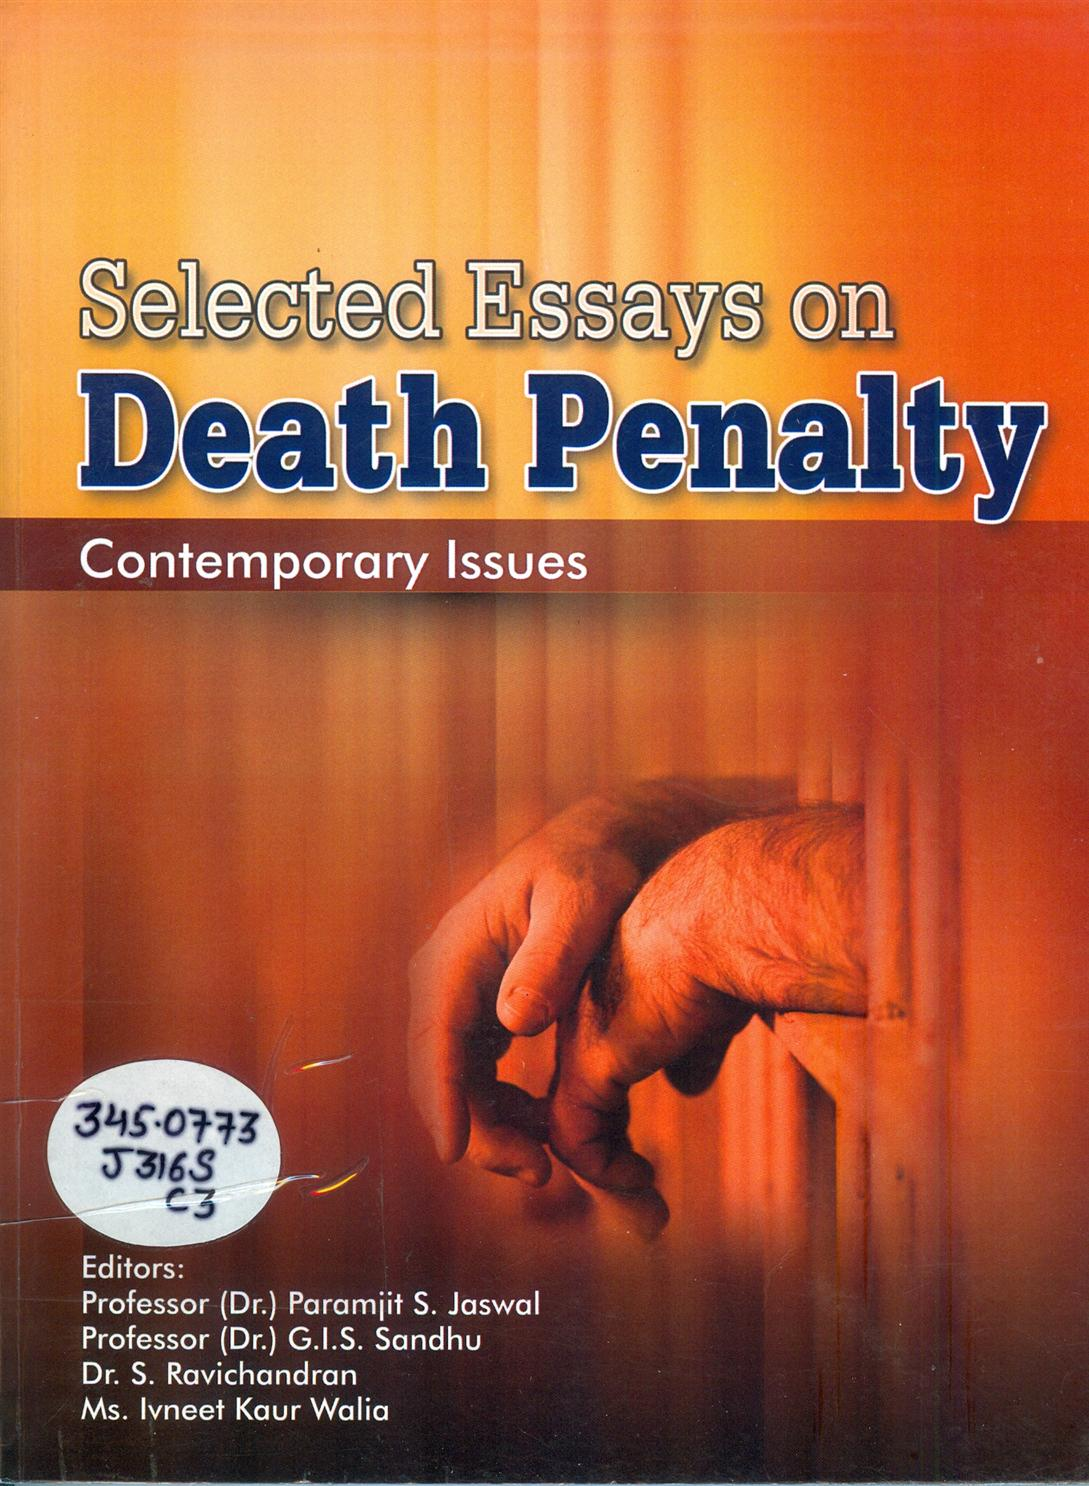 death penalty contemporary issues Read this essay on contemporary issues-death penalty come browse our large digital warehouse of free sample essays get the knowledge you need in order to pass your classes and more.